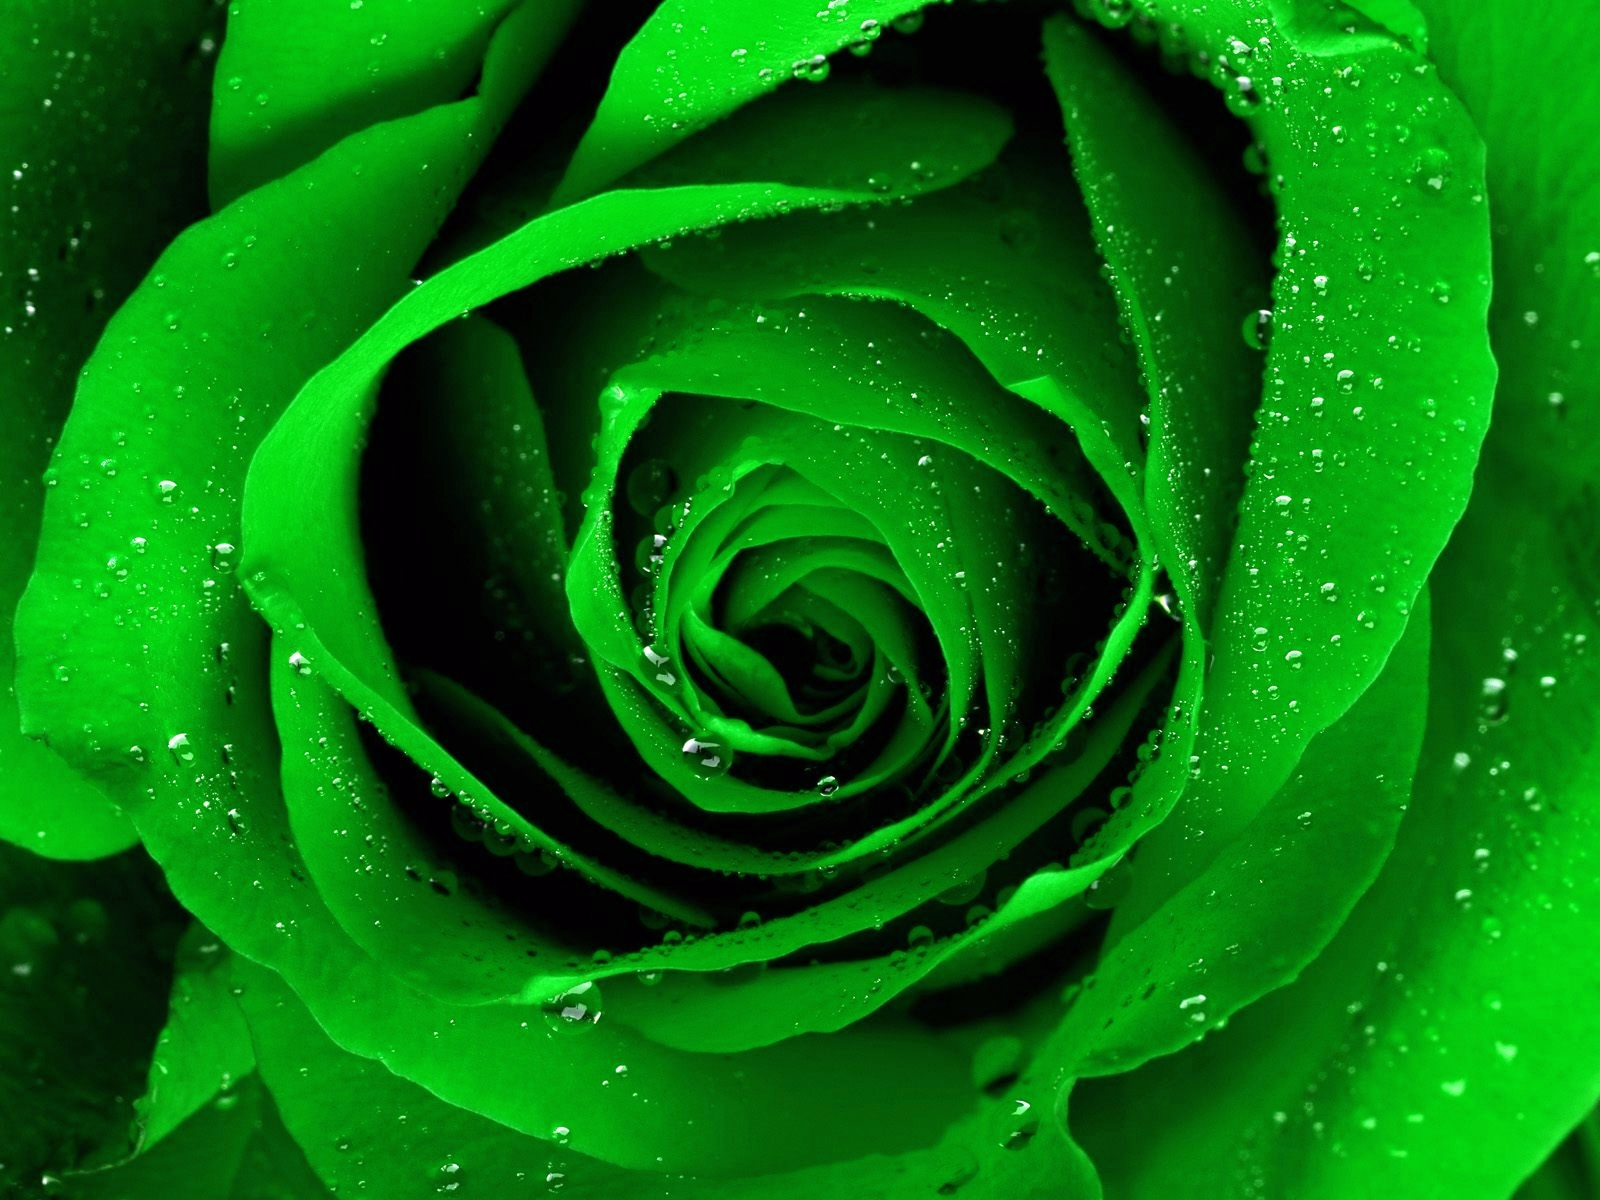 complete green rose